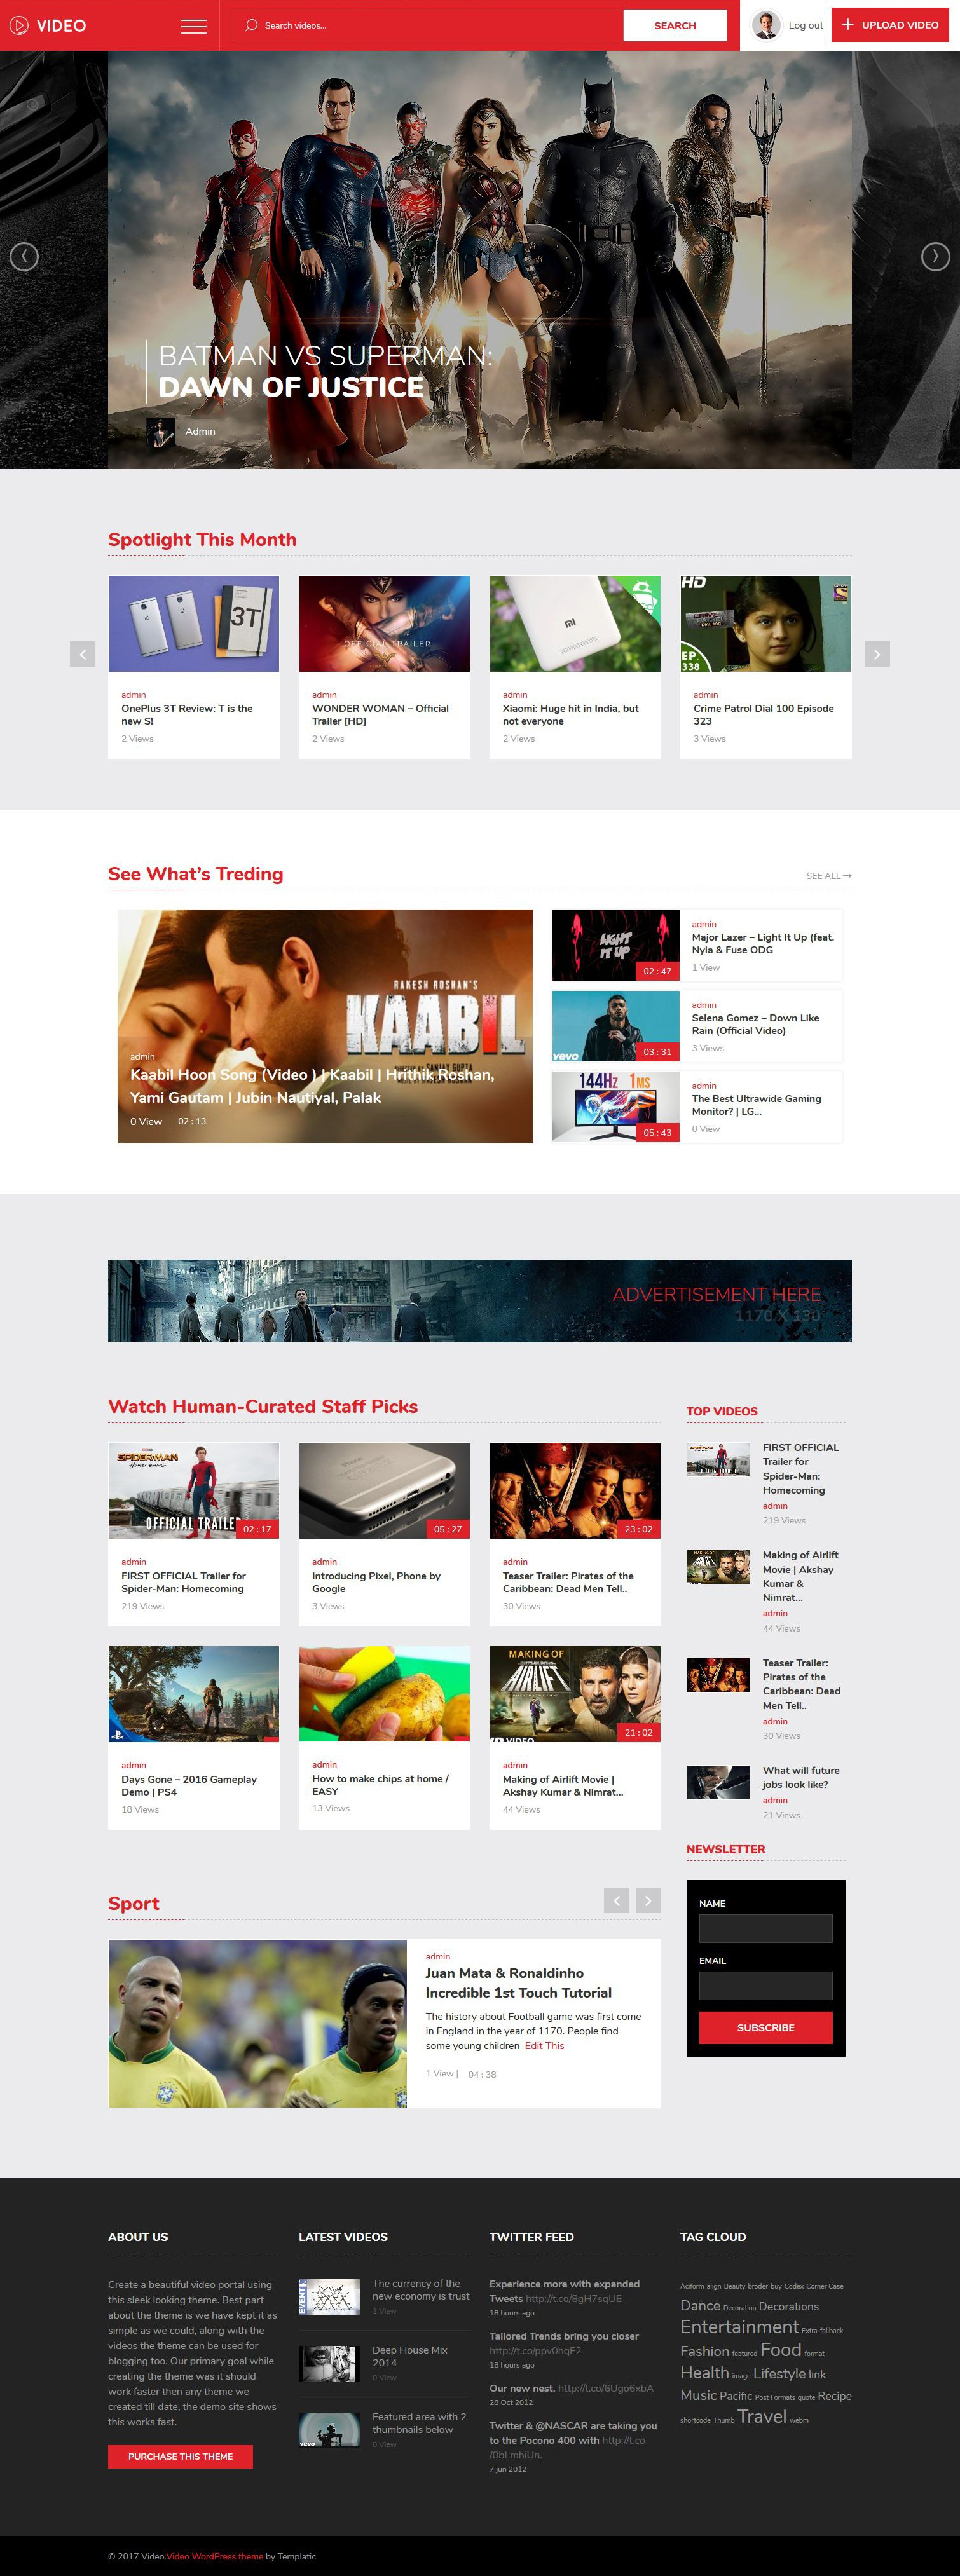 Vivo Video Theme - Best Video WordPress Theme of (2019)